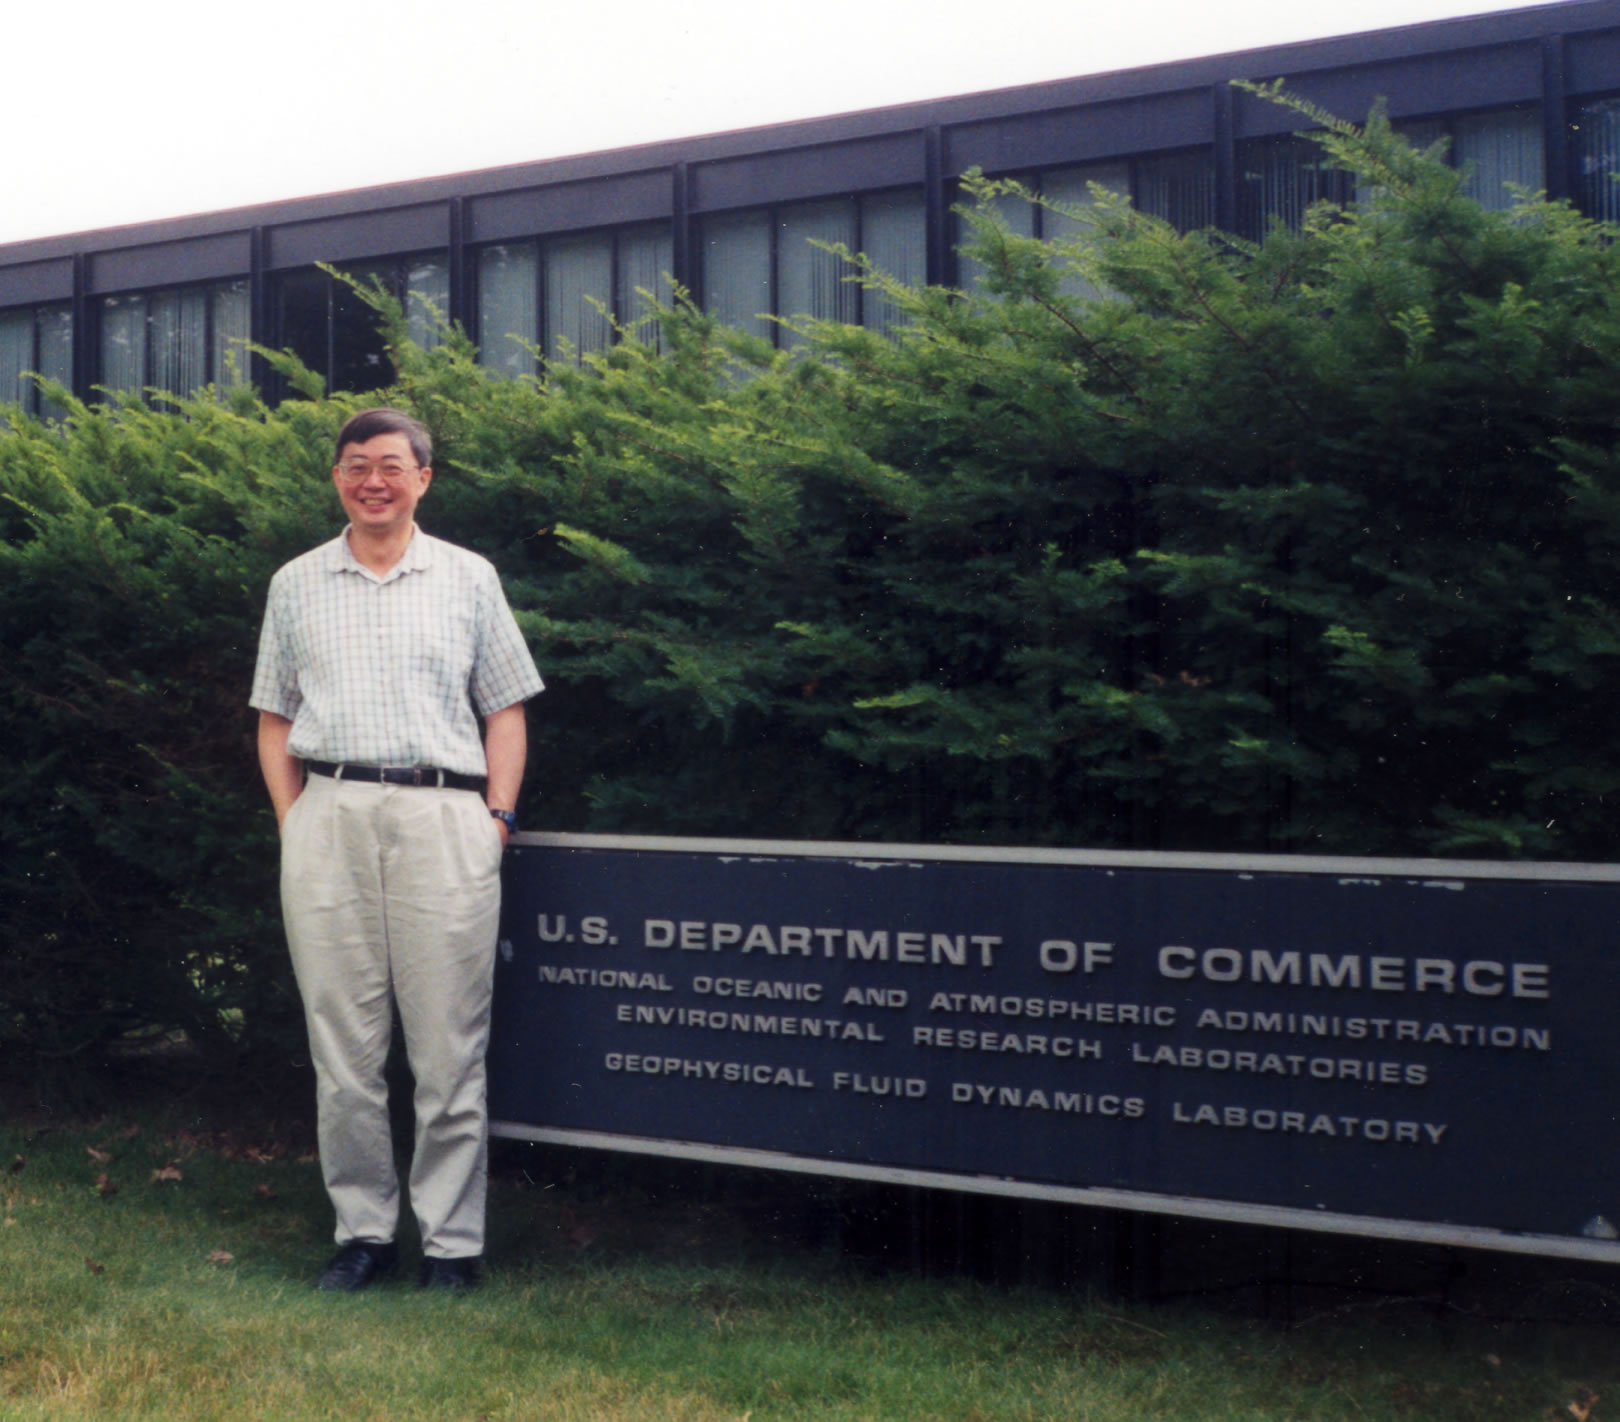 Prof. Lau Ngar-cheung outside the laboratory where he has been working for the past 29 years